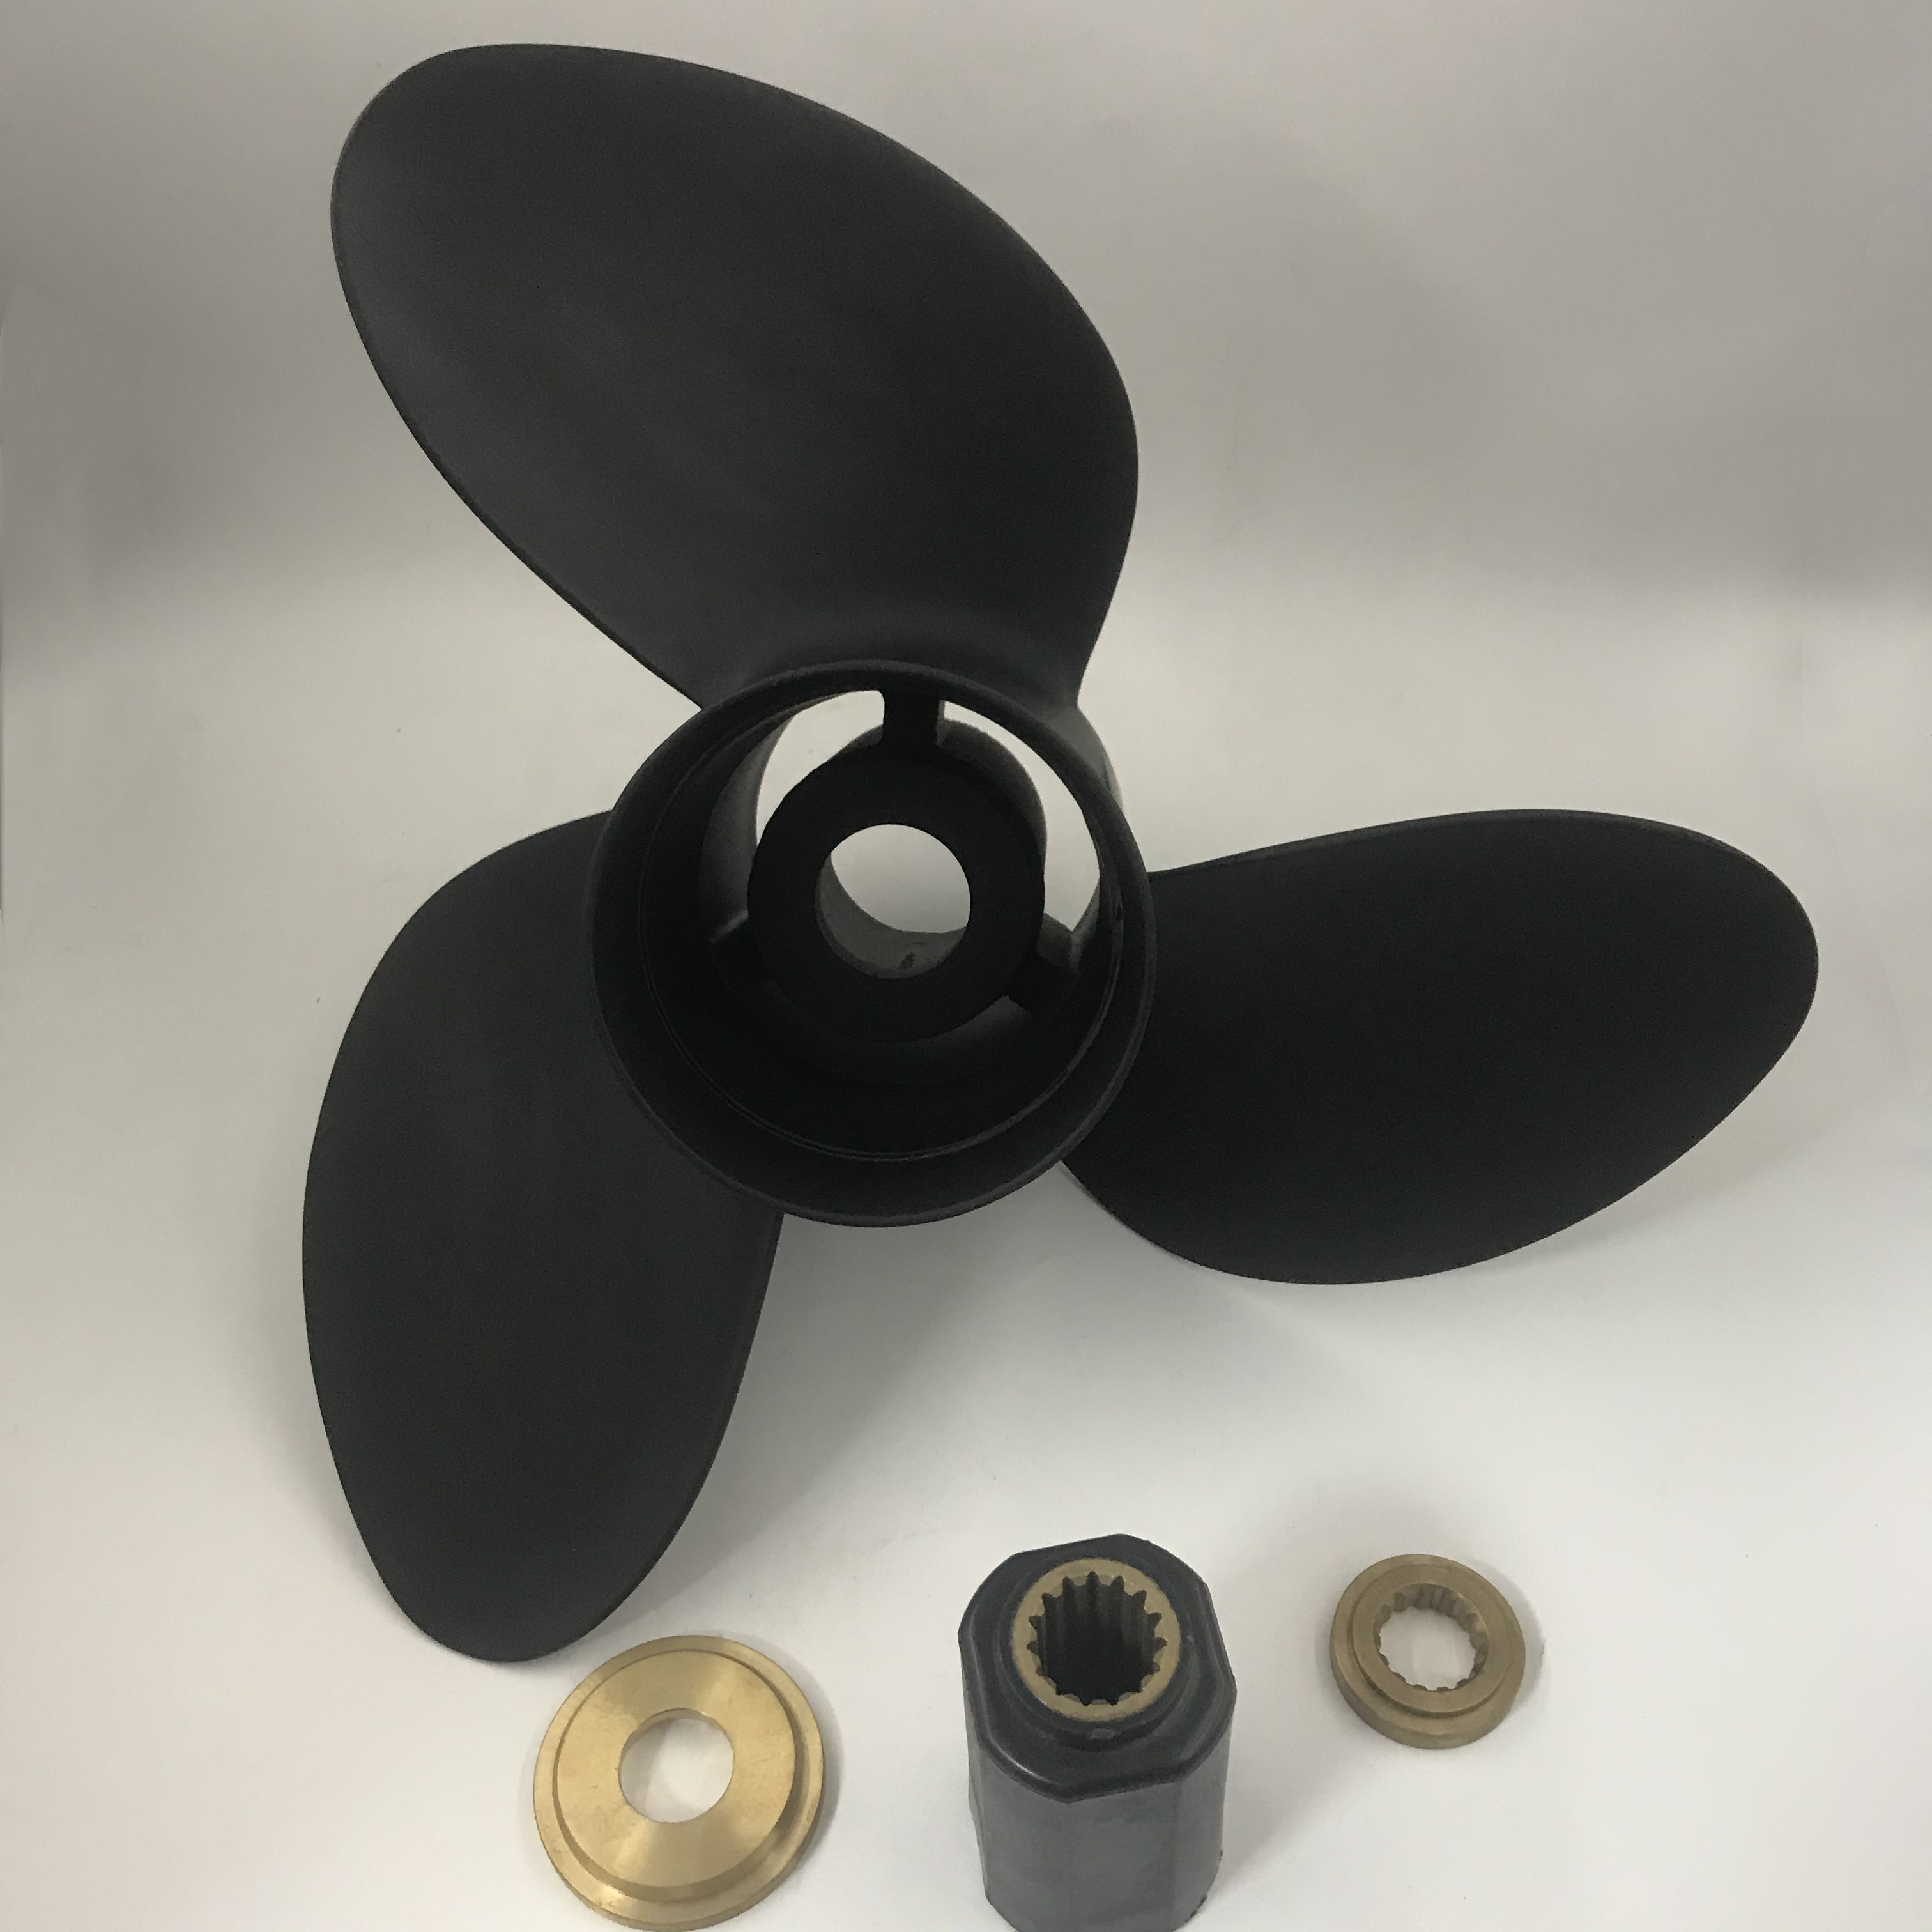 16 x 21 1/2 Aluminum Propeller for Tohatsu Nissan Outboard 115-250HP